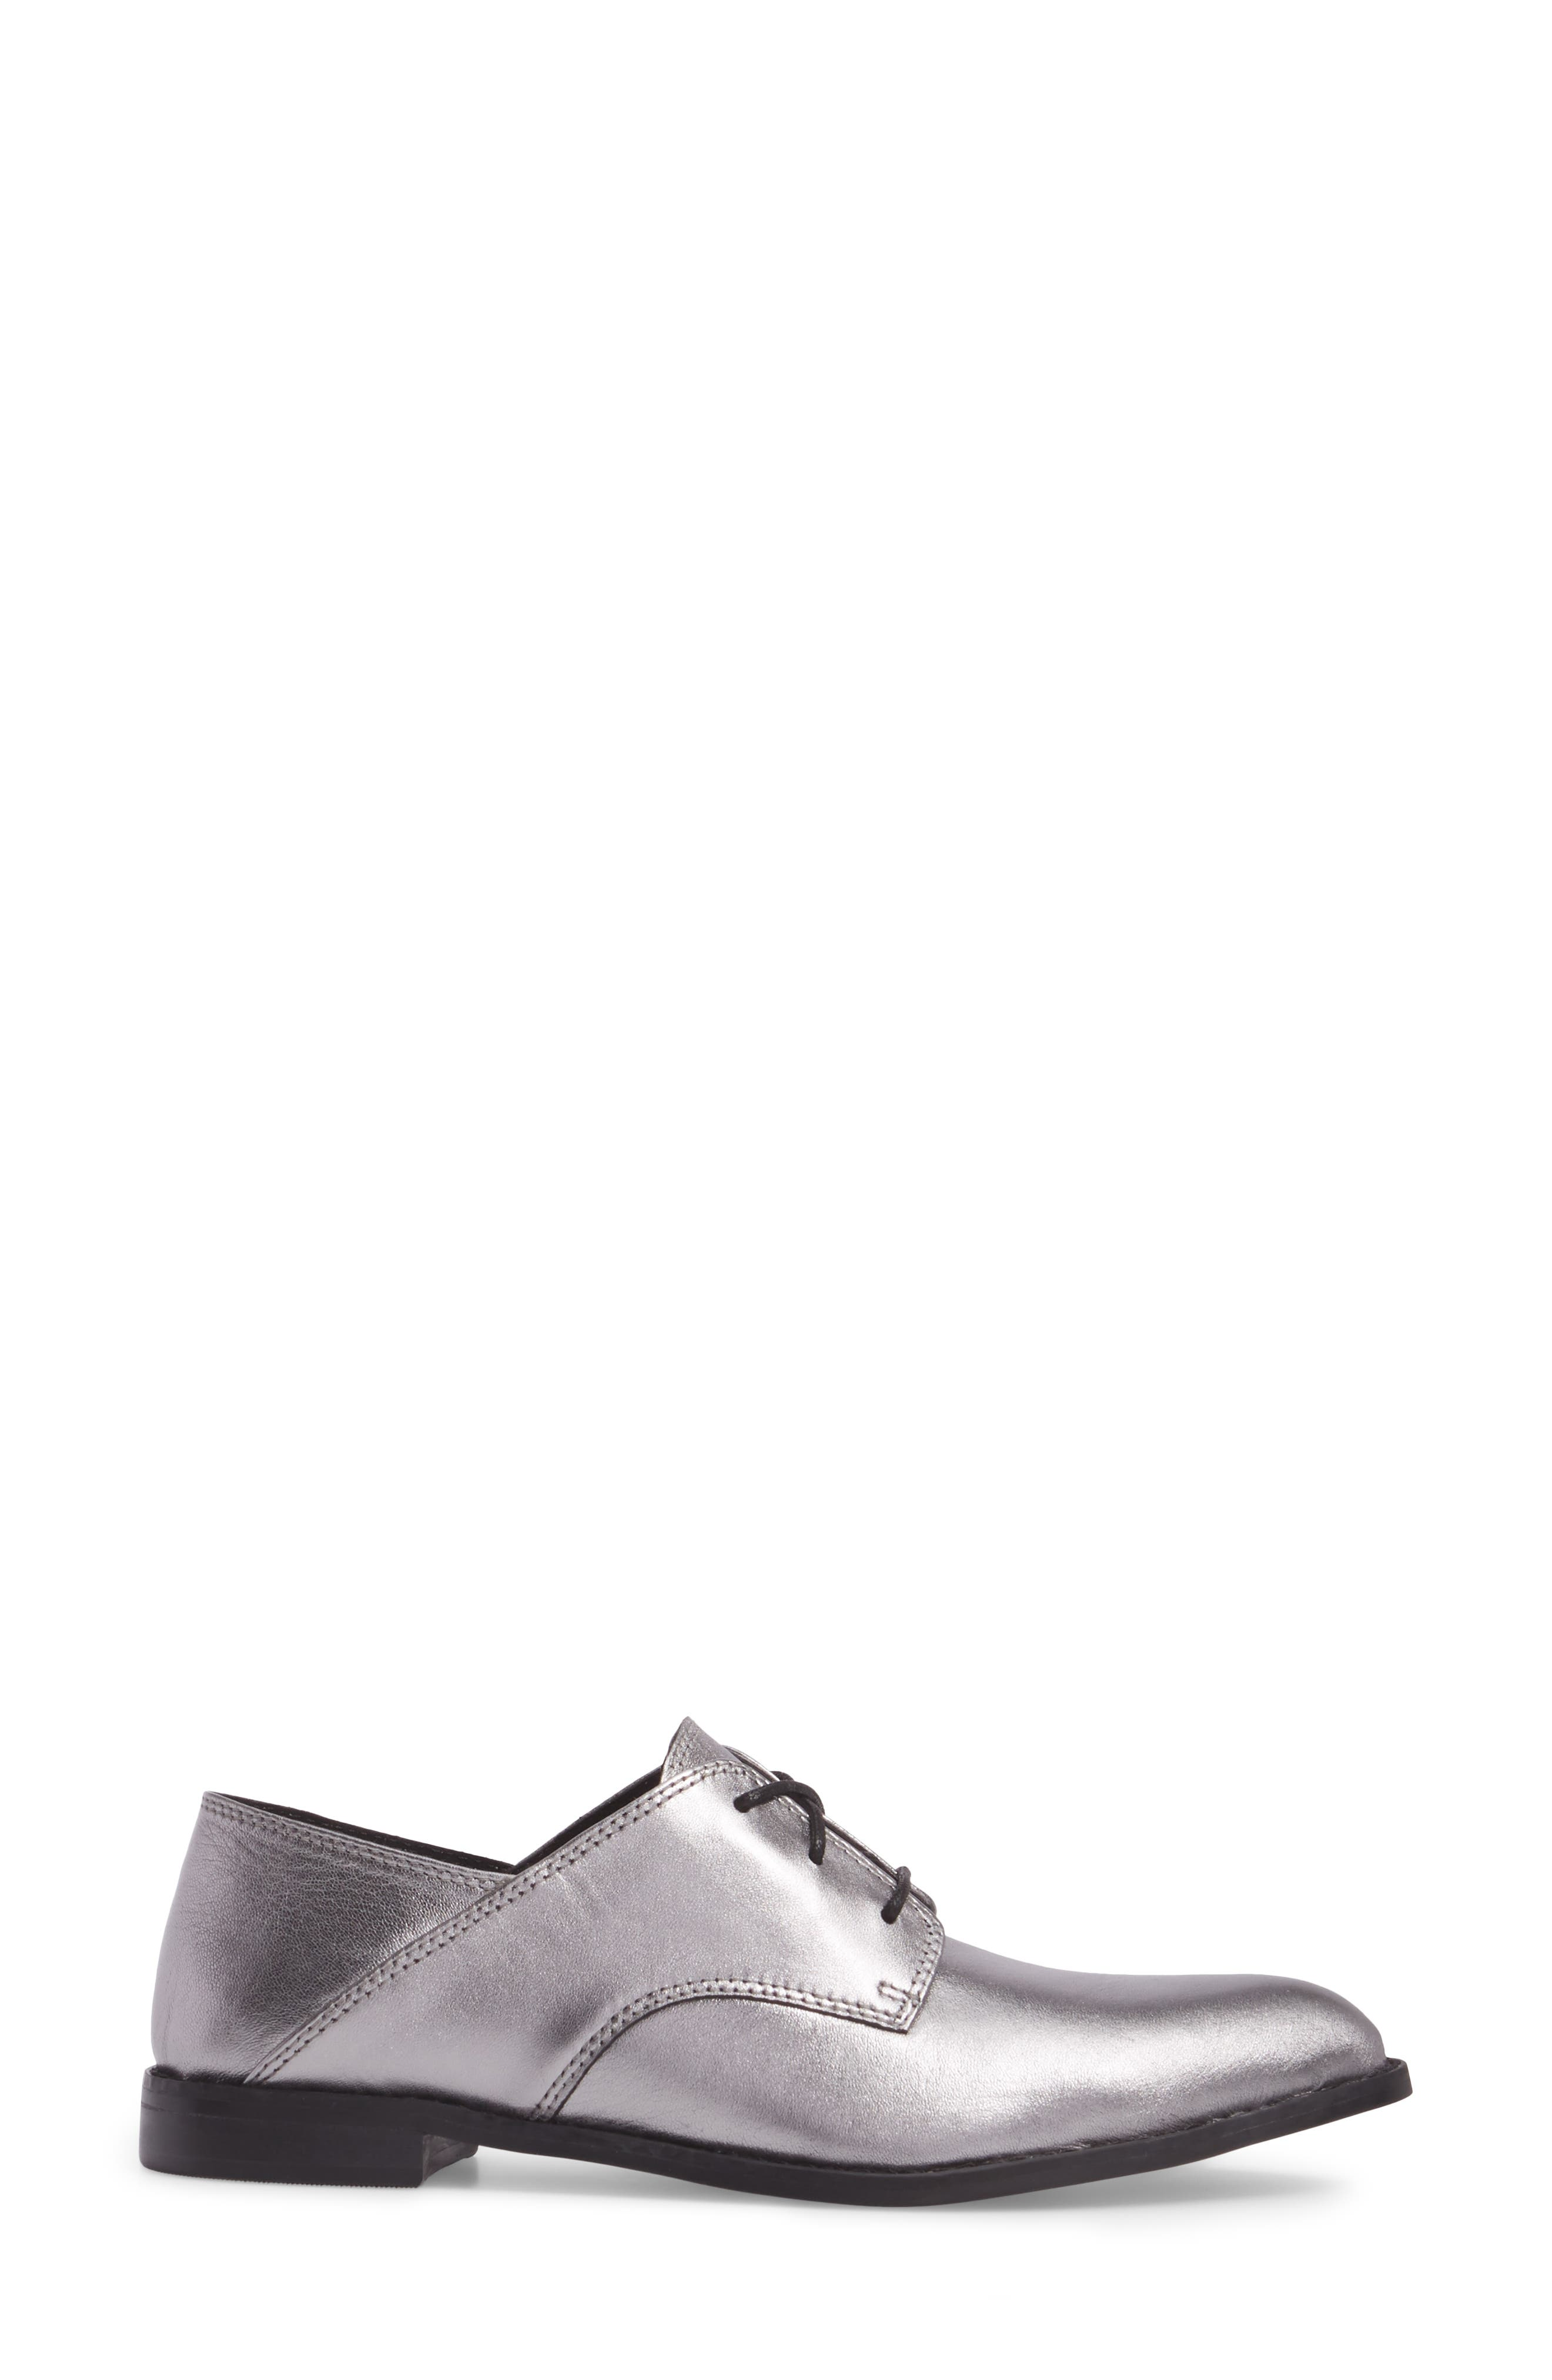 Corbin Oxford,                             Alternate thumbnail 3, color,                             Pewter Leather